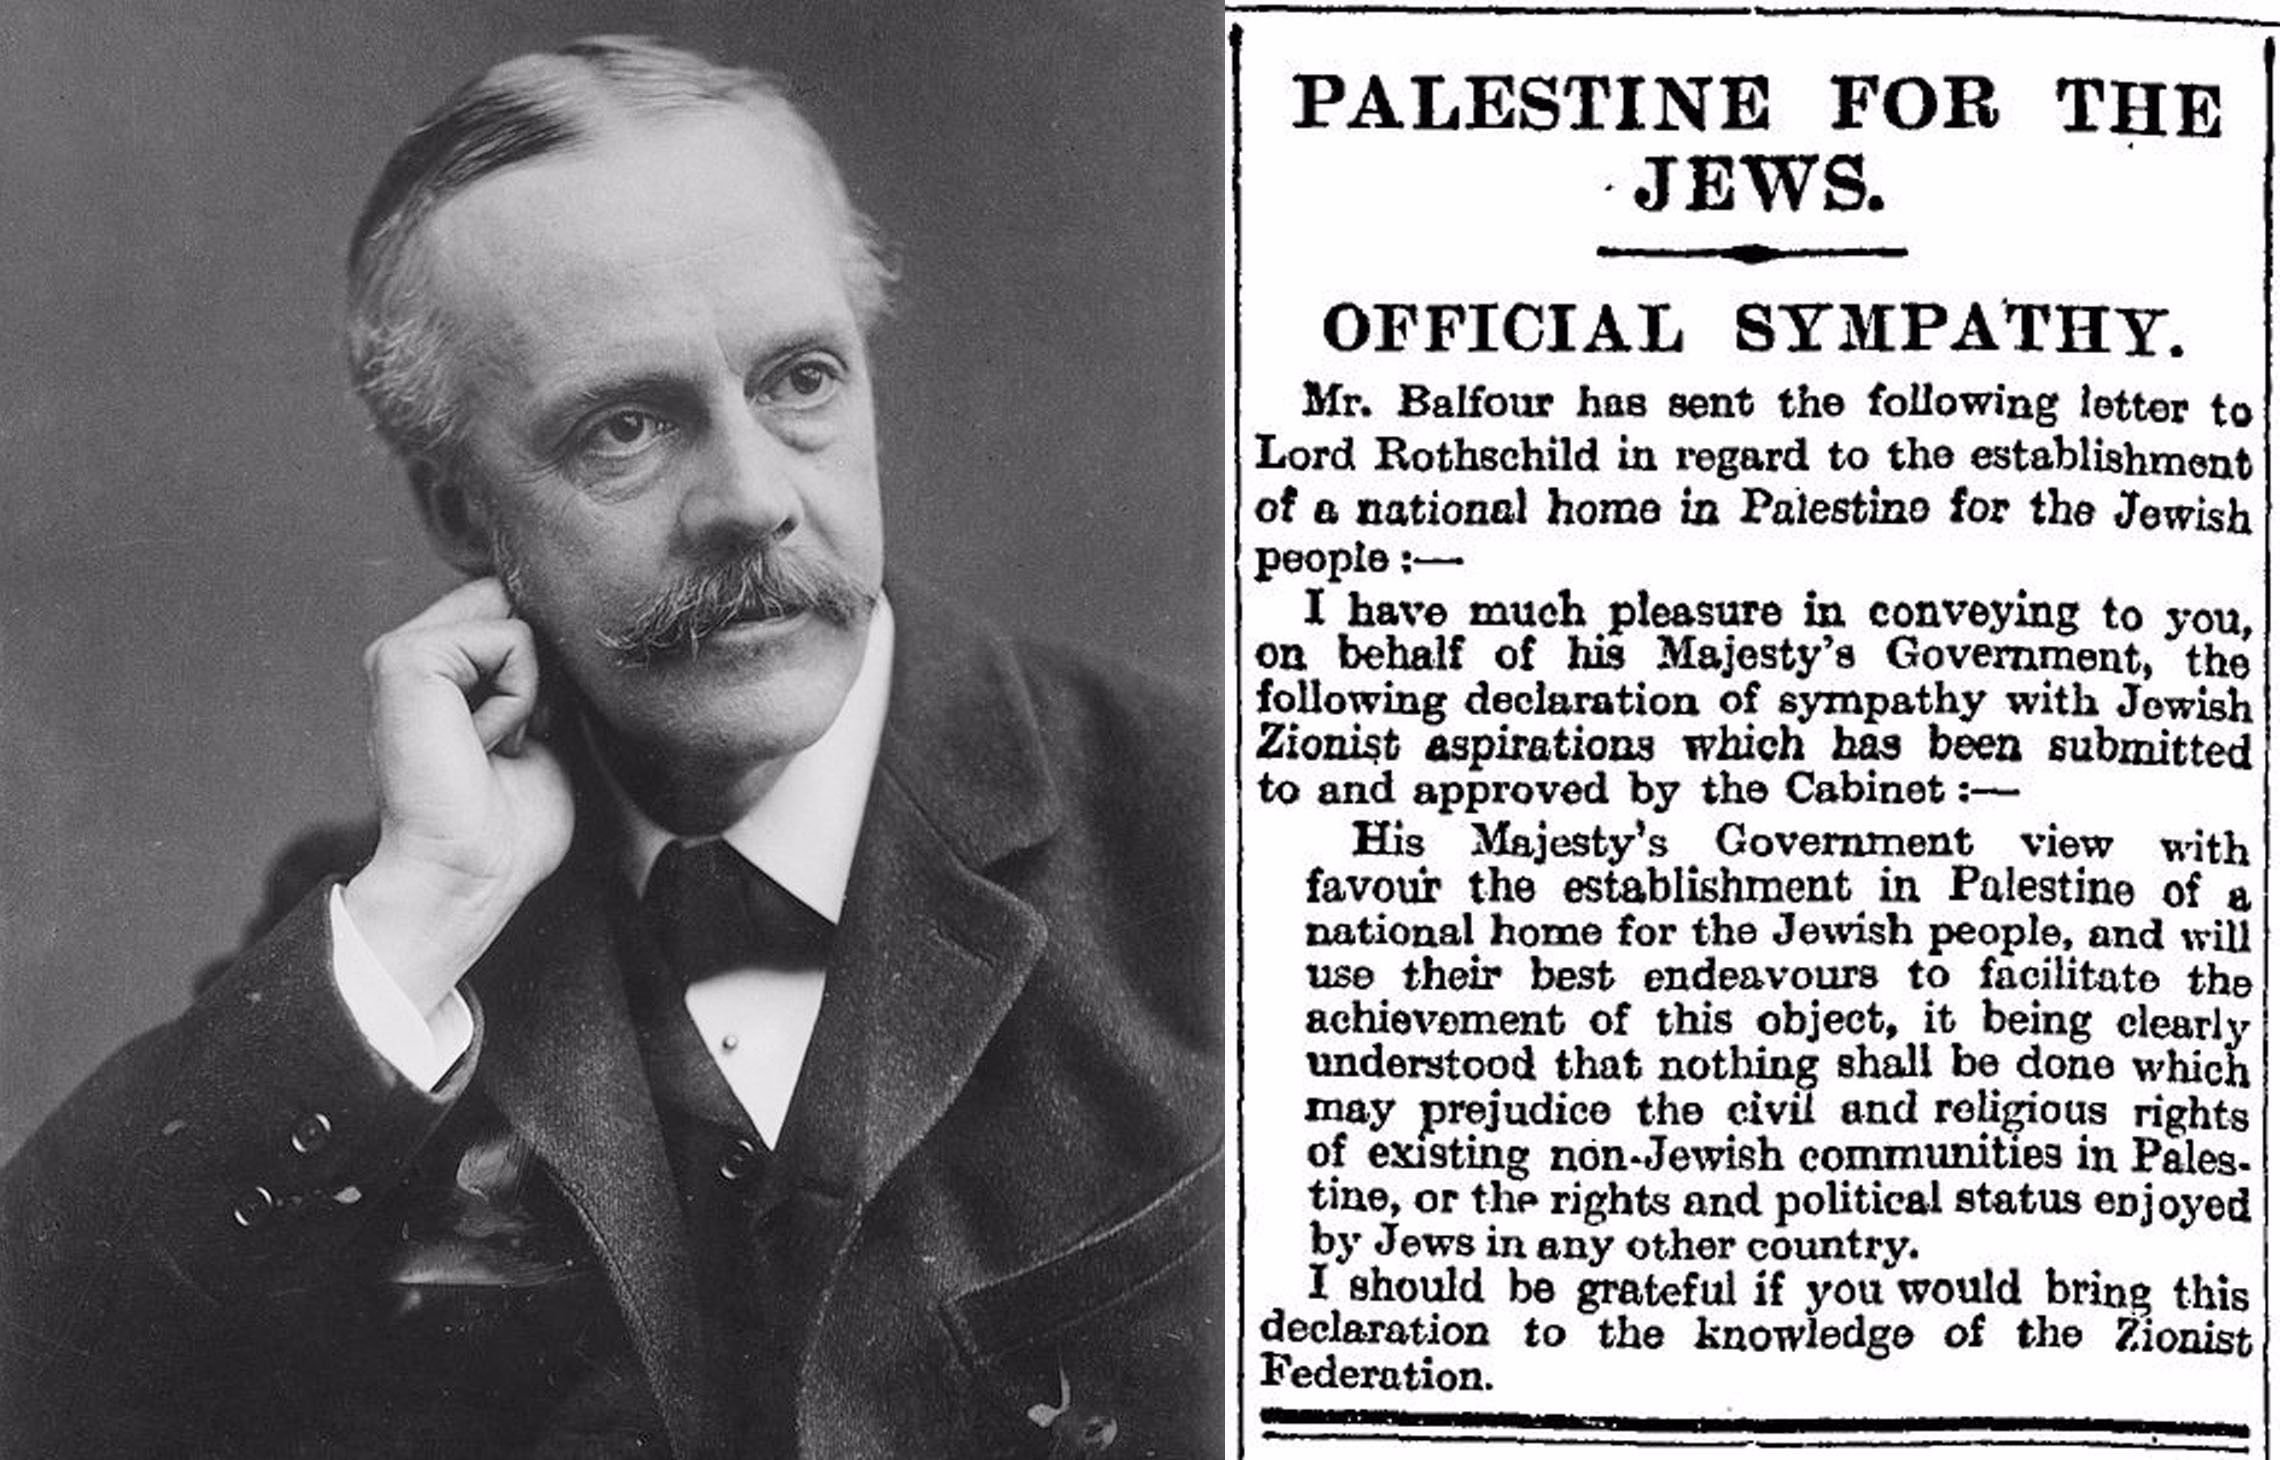 10 Fantastic The Balfour Declaration Of 1917 Supported The Idea Of A the belfour declaration pakistan today 2020